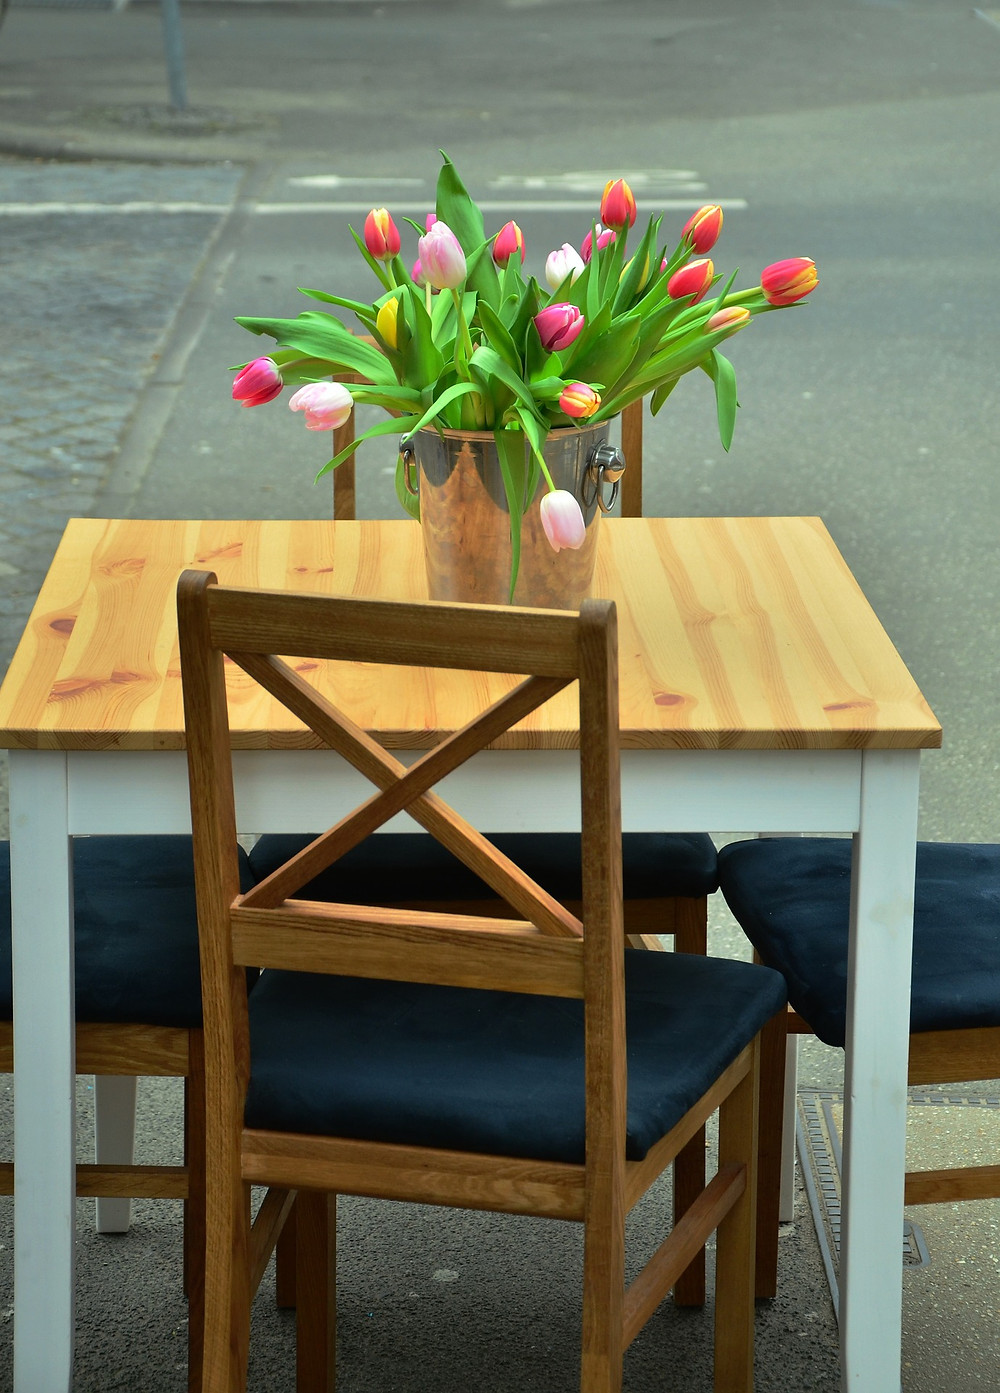 a chair at a table with a vase of tulips